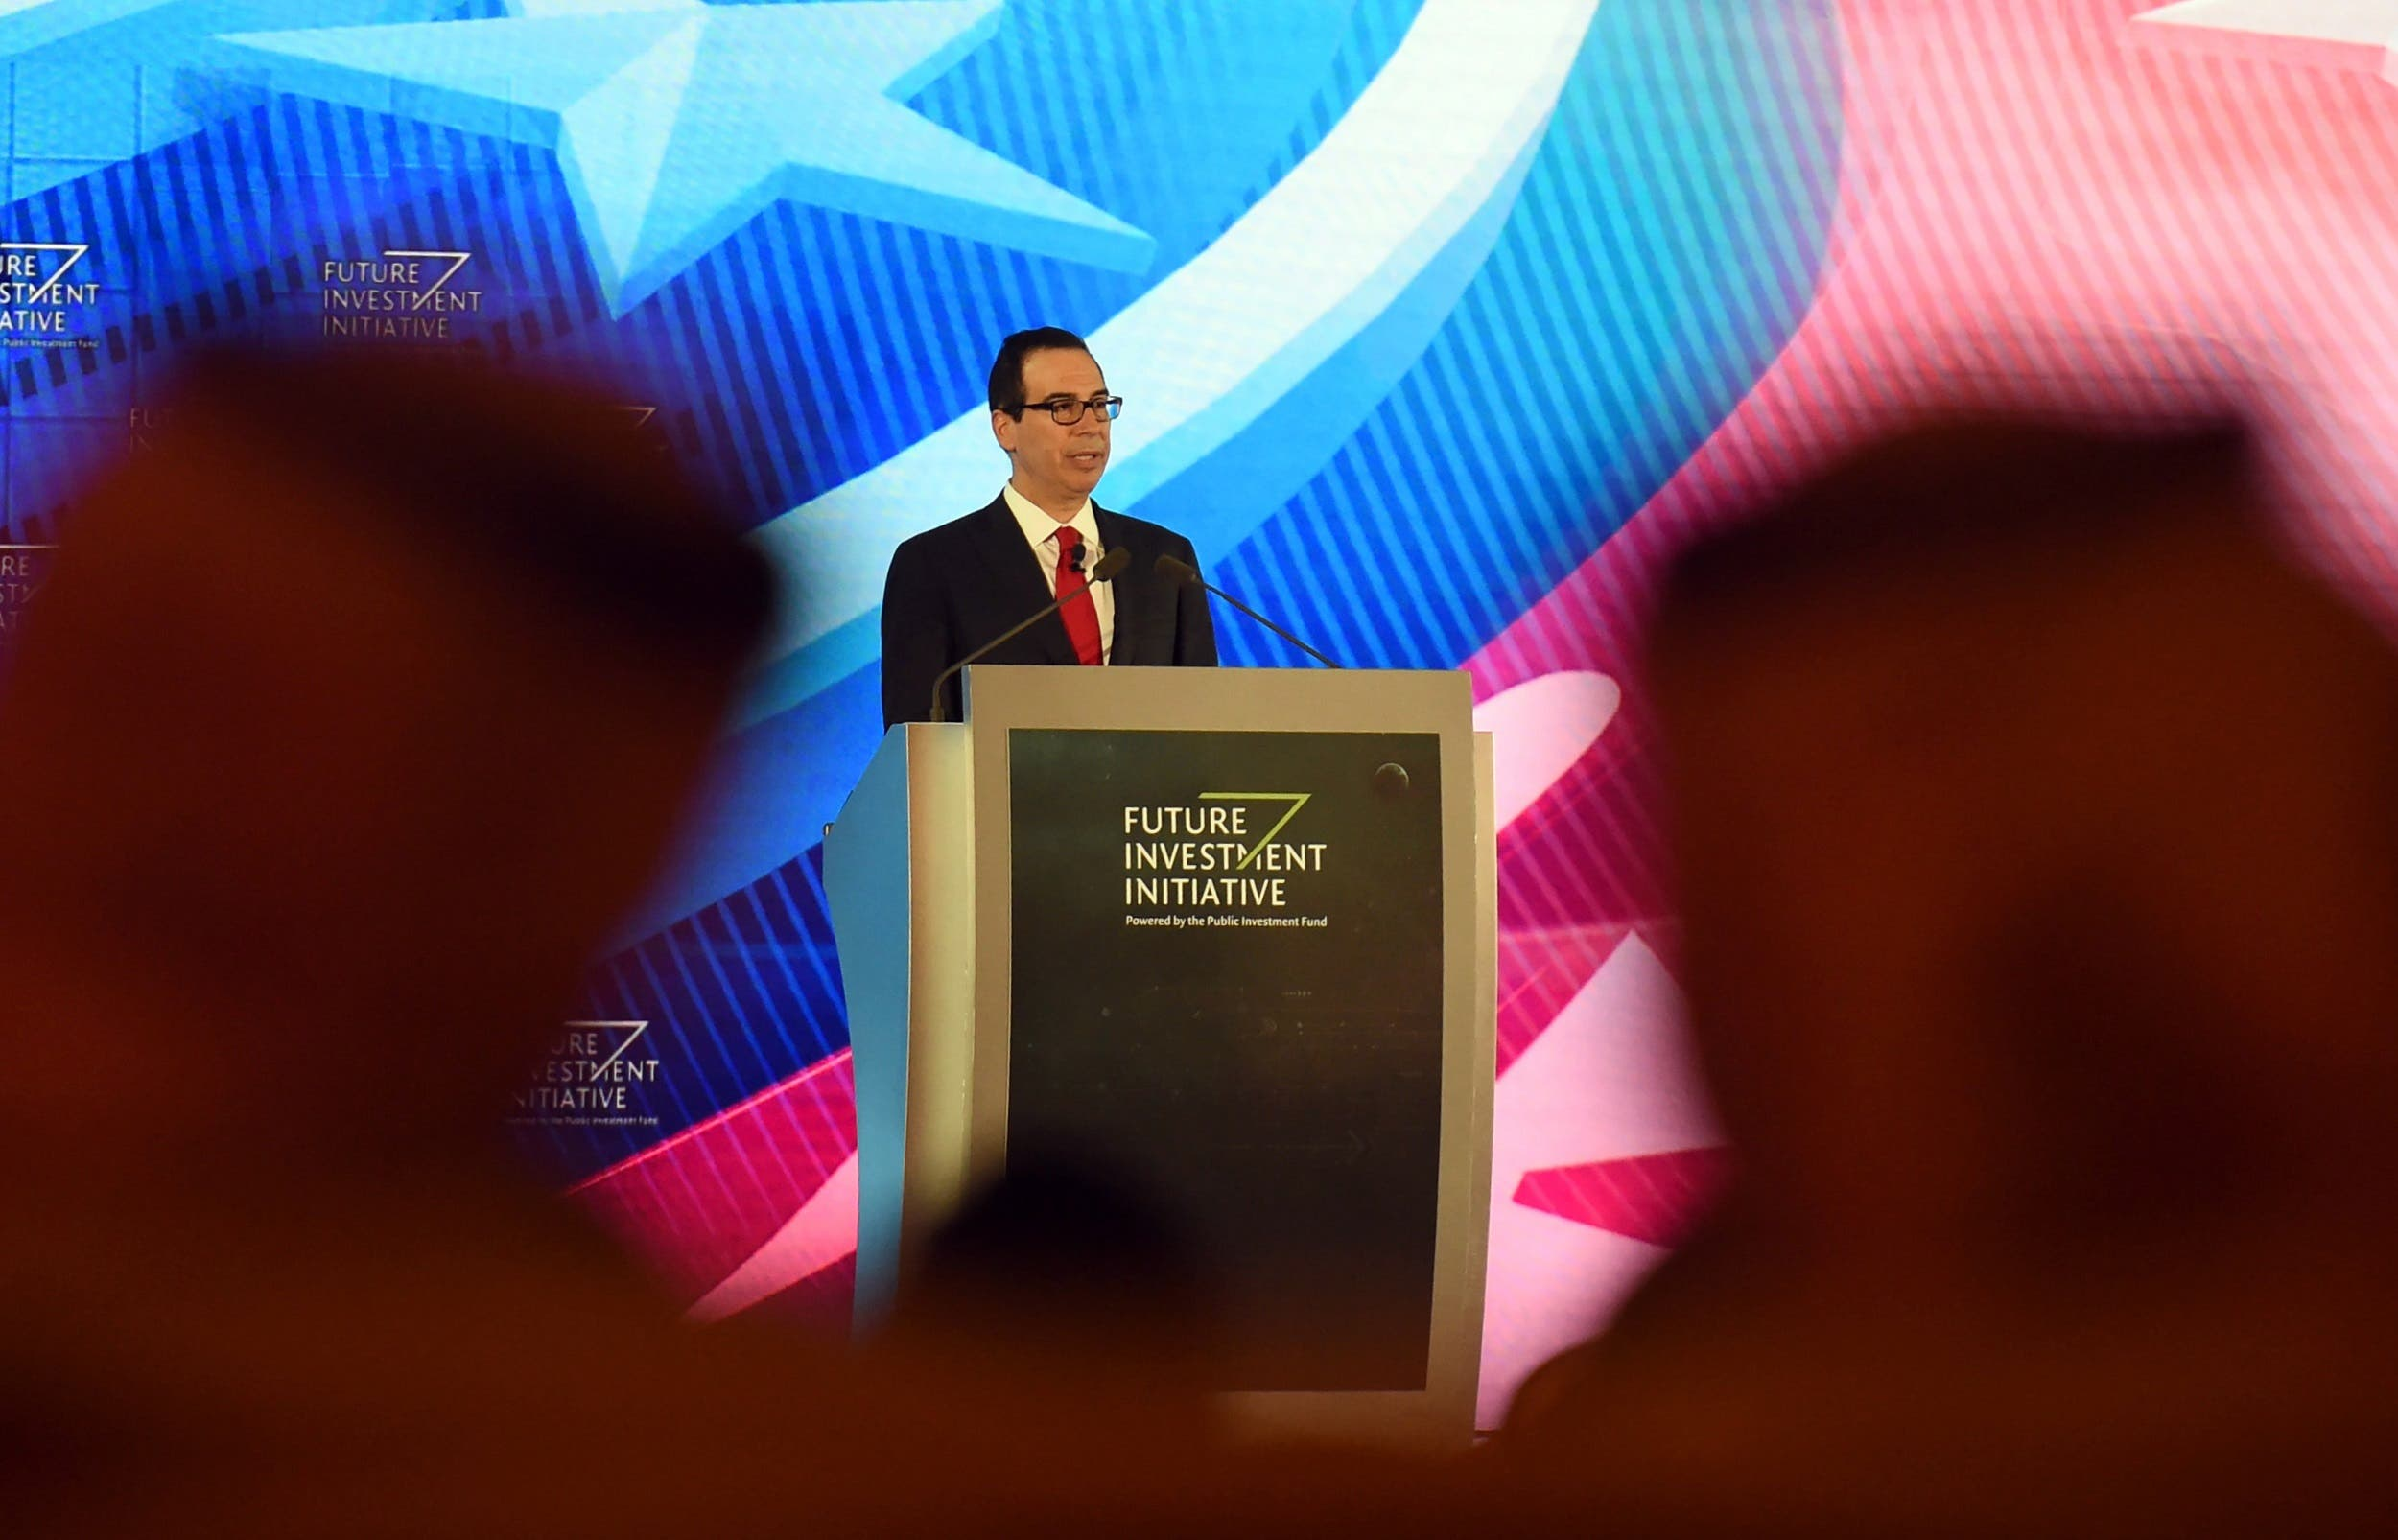 US Treasury Secretary Steven Mnuchin speaks during the three-day Future Investment Initiatives conference in Riyadh, on October 25, 2017. (AFP)